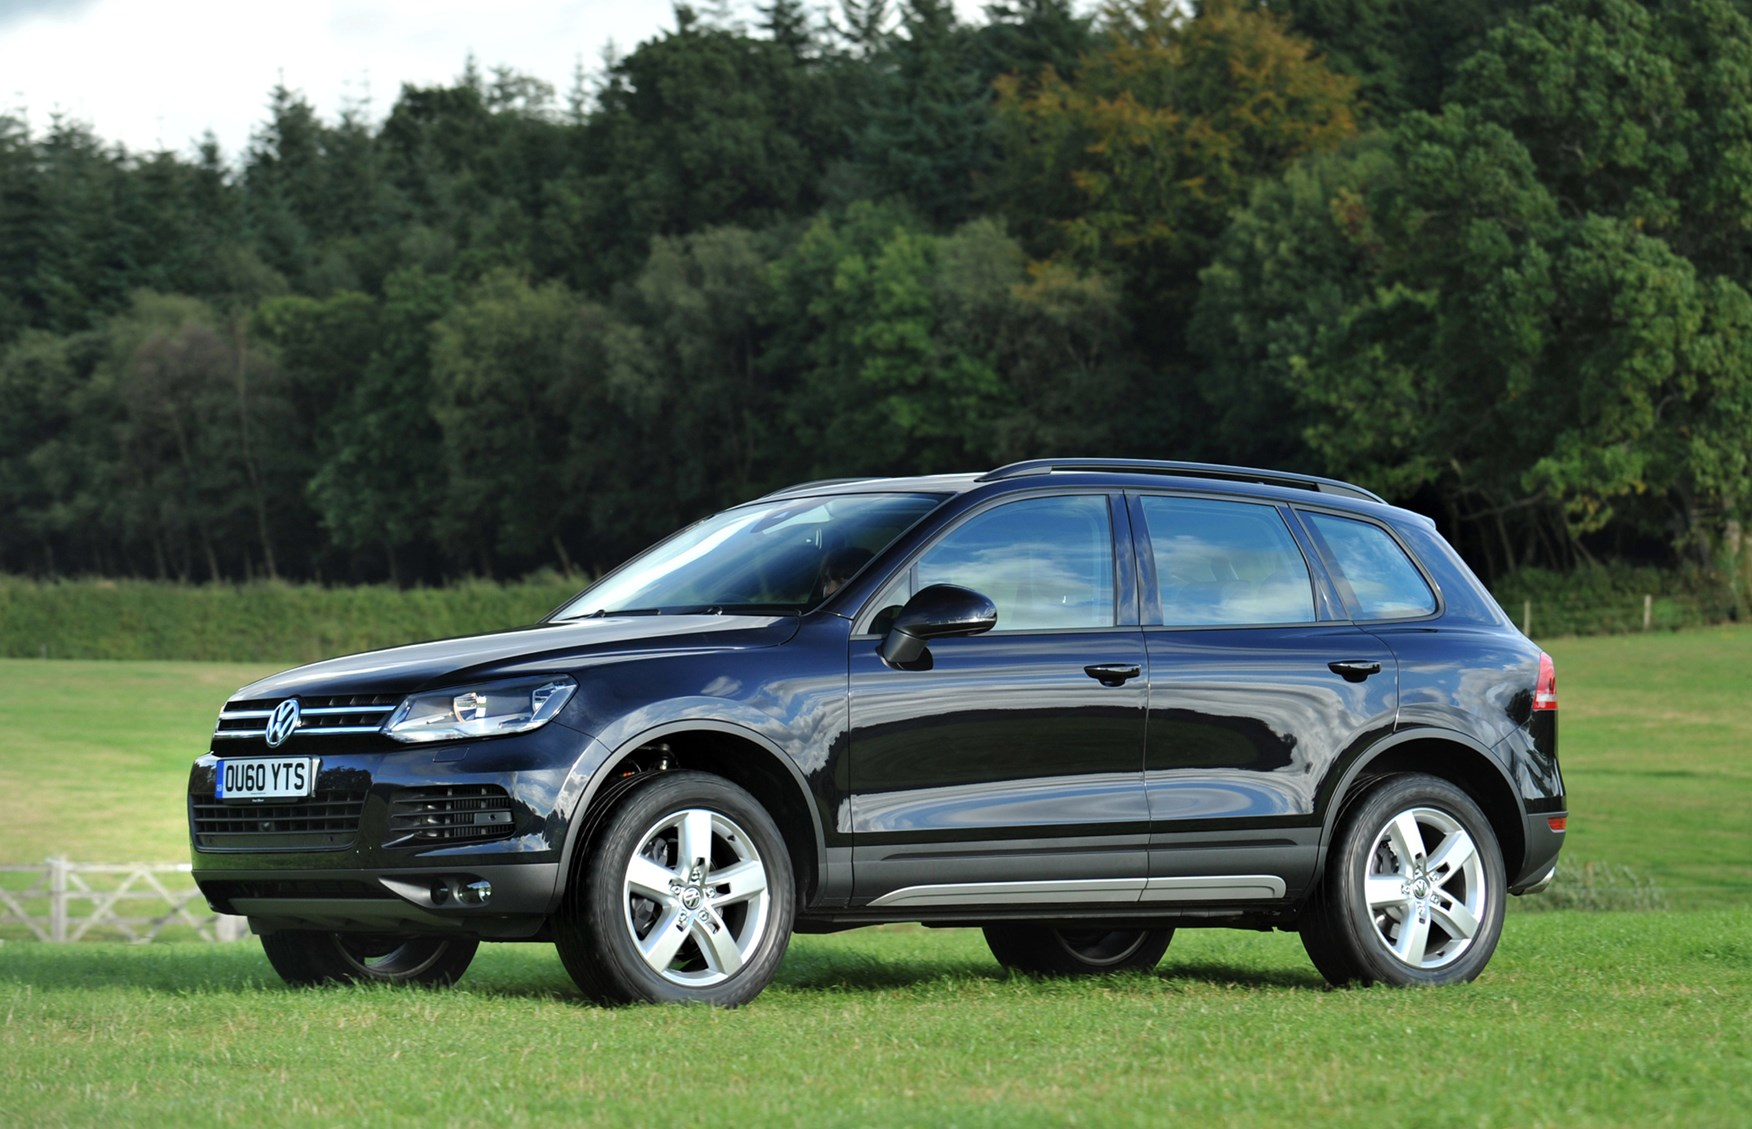 volkswagen touareg estate review 2010 parkers. Black Bedroom Furniture Sets. Home Design Ideas